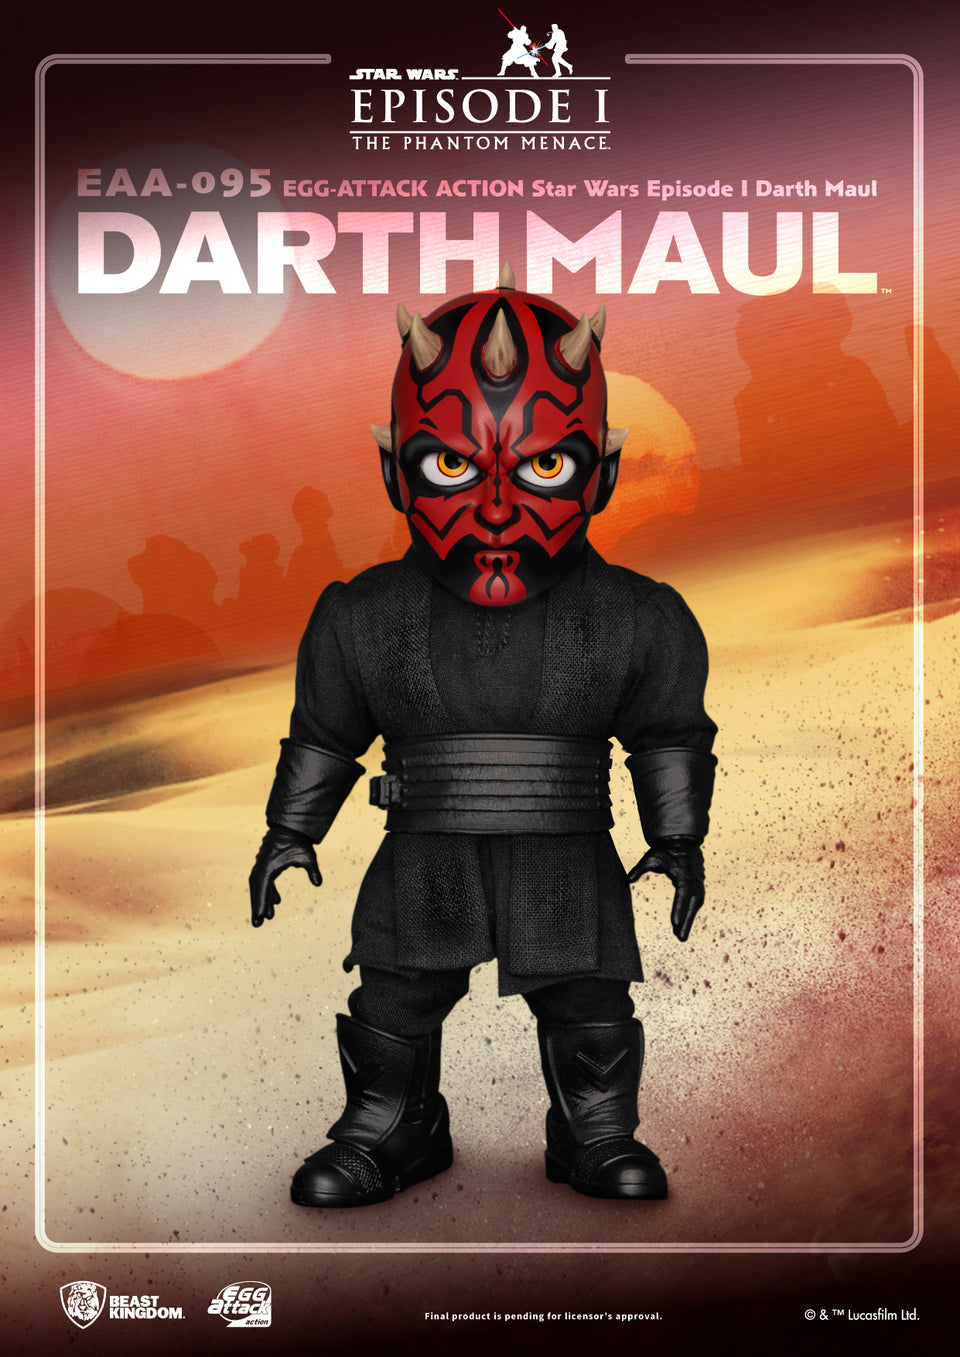 Star Wars Episode I Darth Maul Egg Attack Action PRE-ORDER